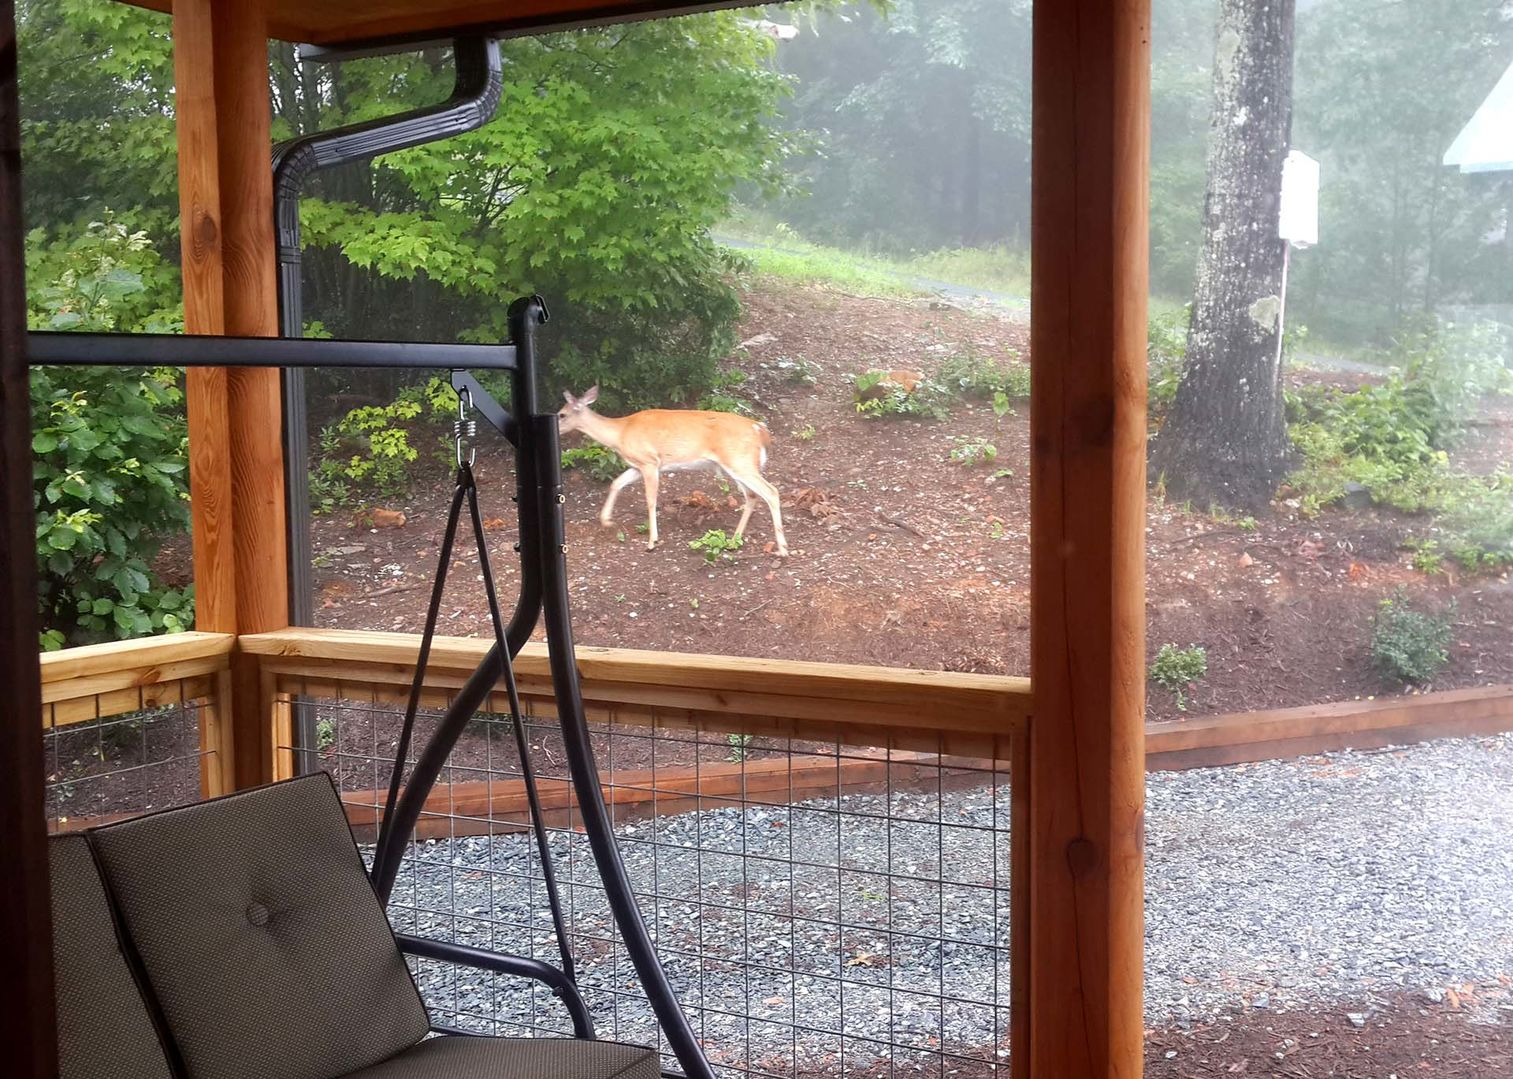 If you're lucky, you might see some deer roaming around int he yard!